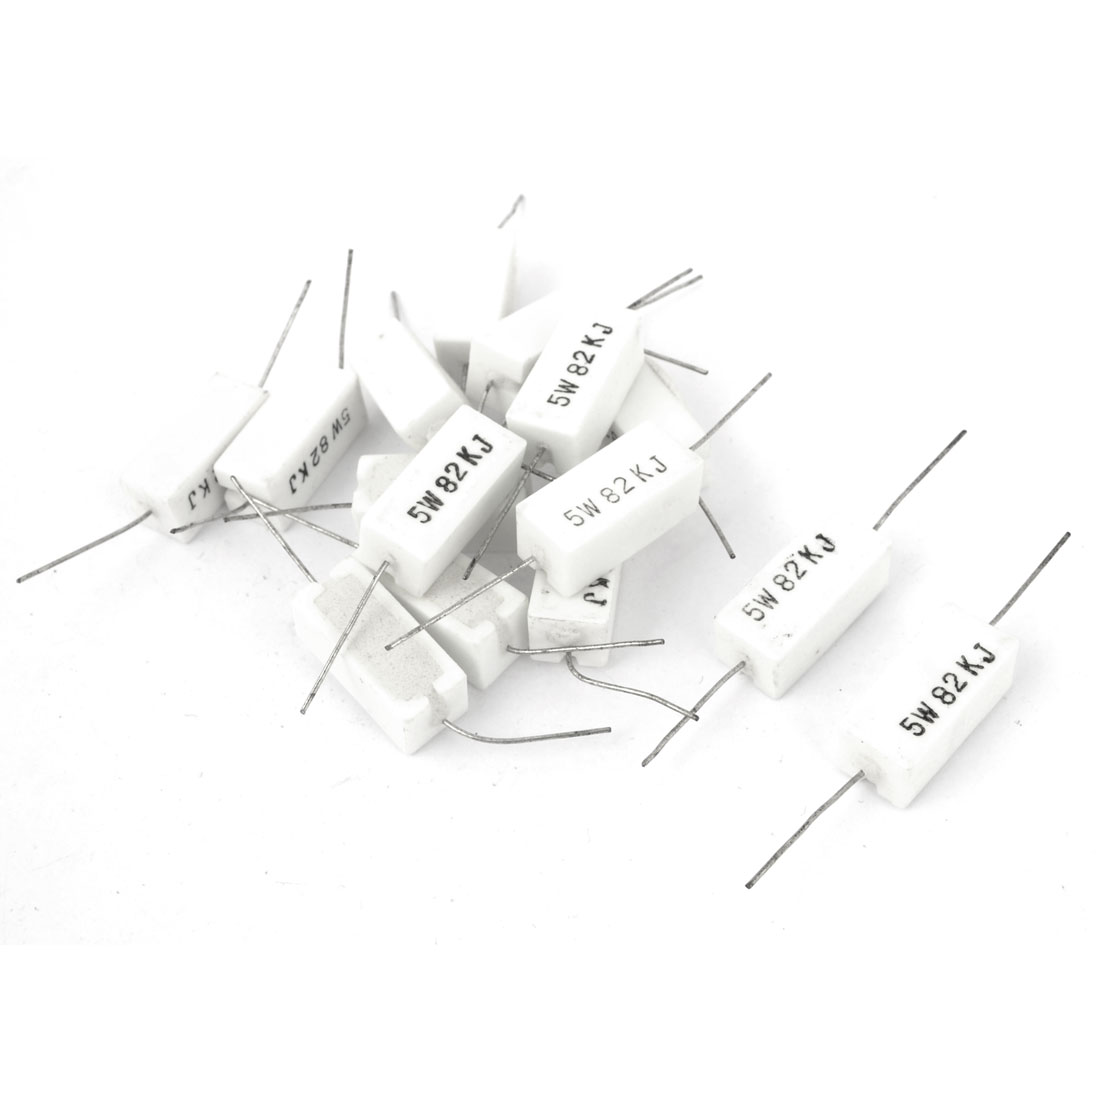 5W 82K Ohm Axial Lead 5% Tolerance White Rectangle Ceramic Cement Power Resistor 15 Pcs